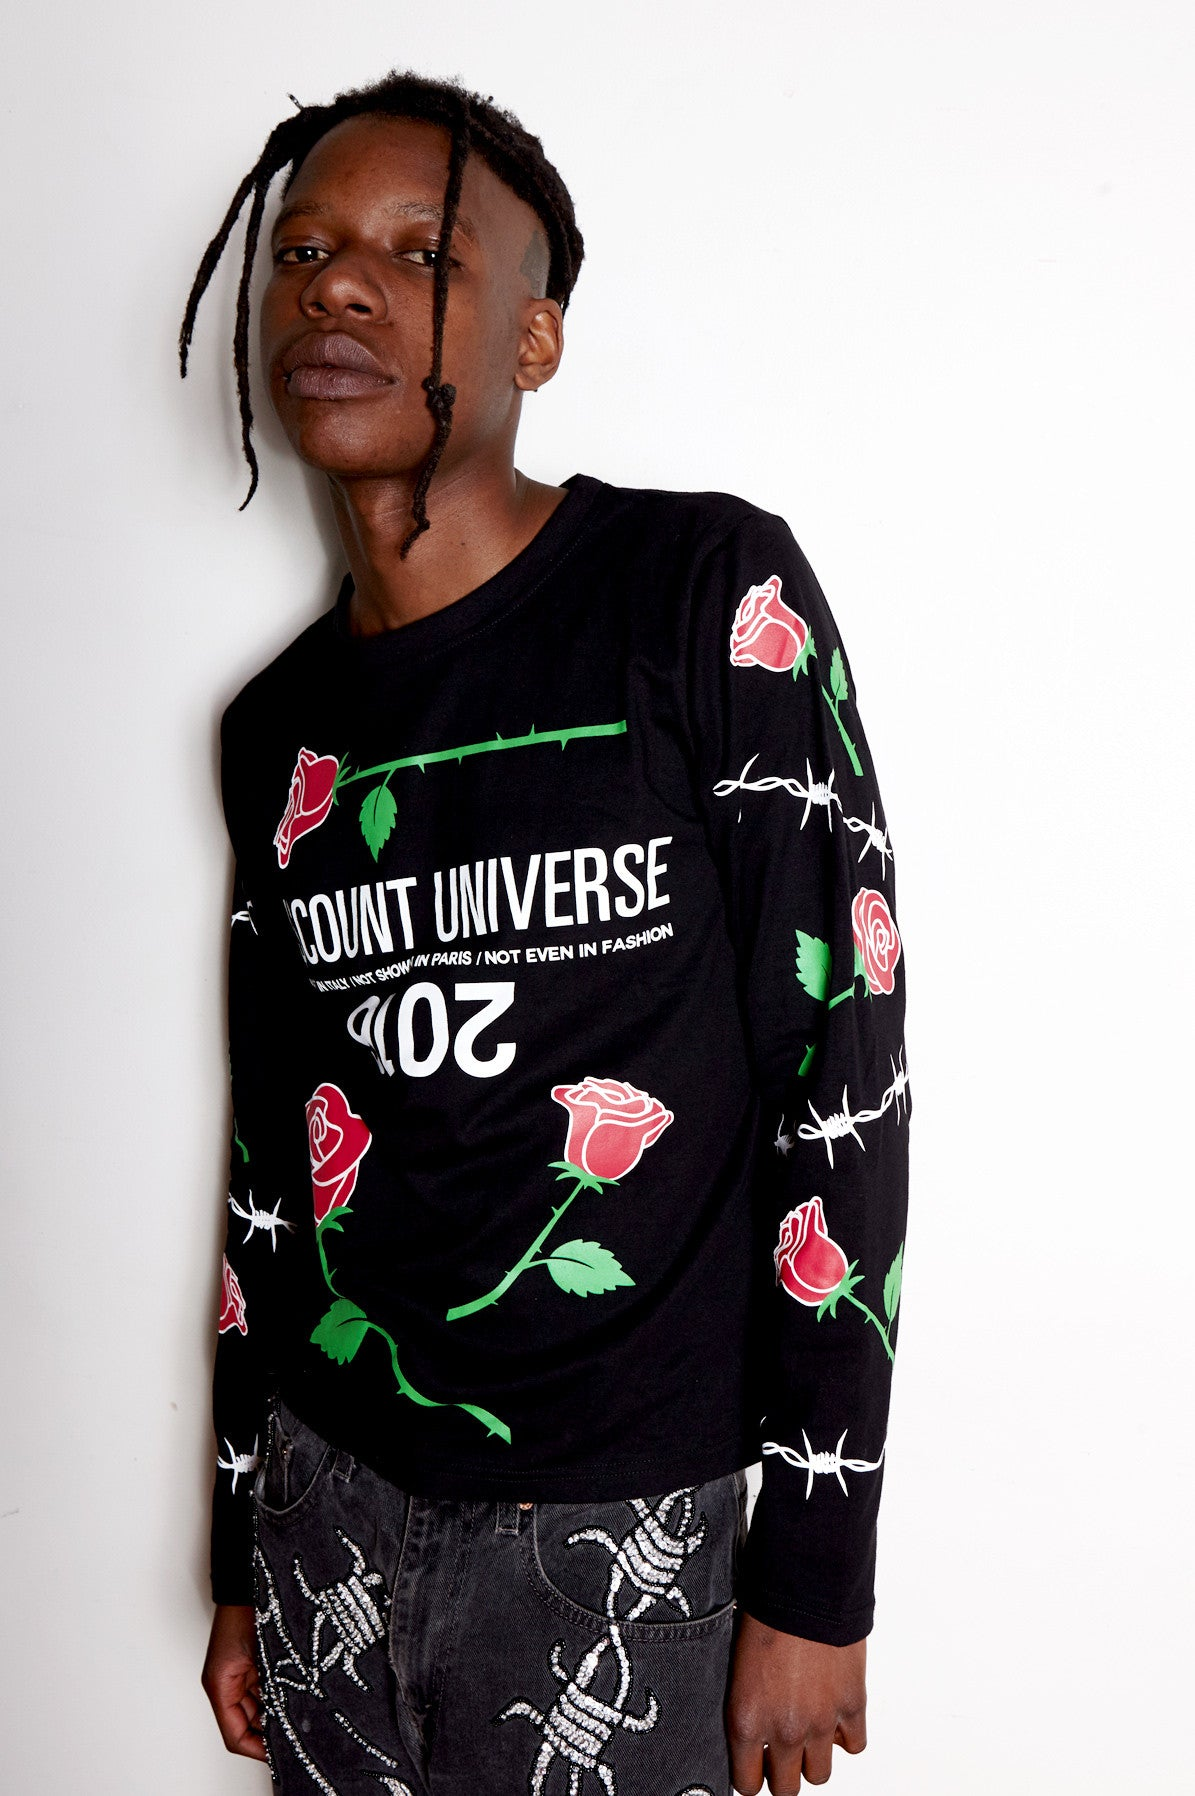 roses are red tee, roses tee, roses are red long sleeve tee, long sleeve tee, tee, roses, printed tee, printed long sleeve tee, runway, msfw, 2016, discount universe, di$count universe